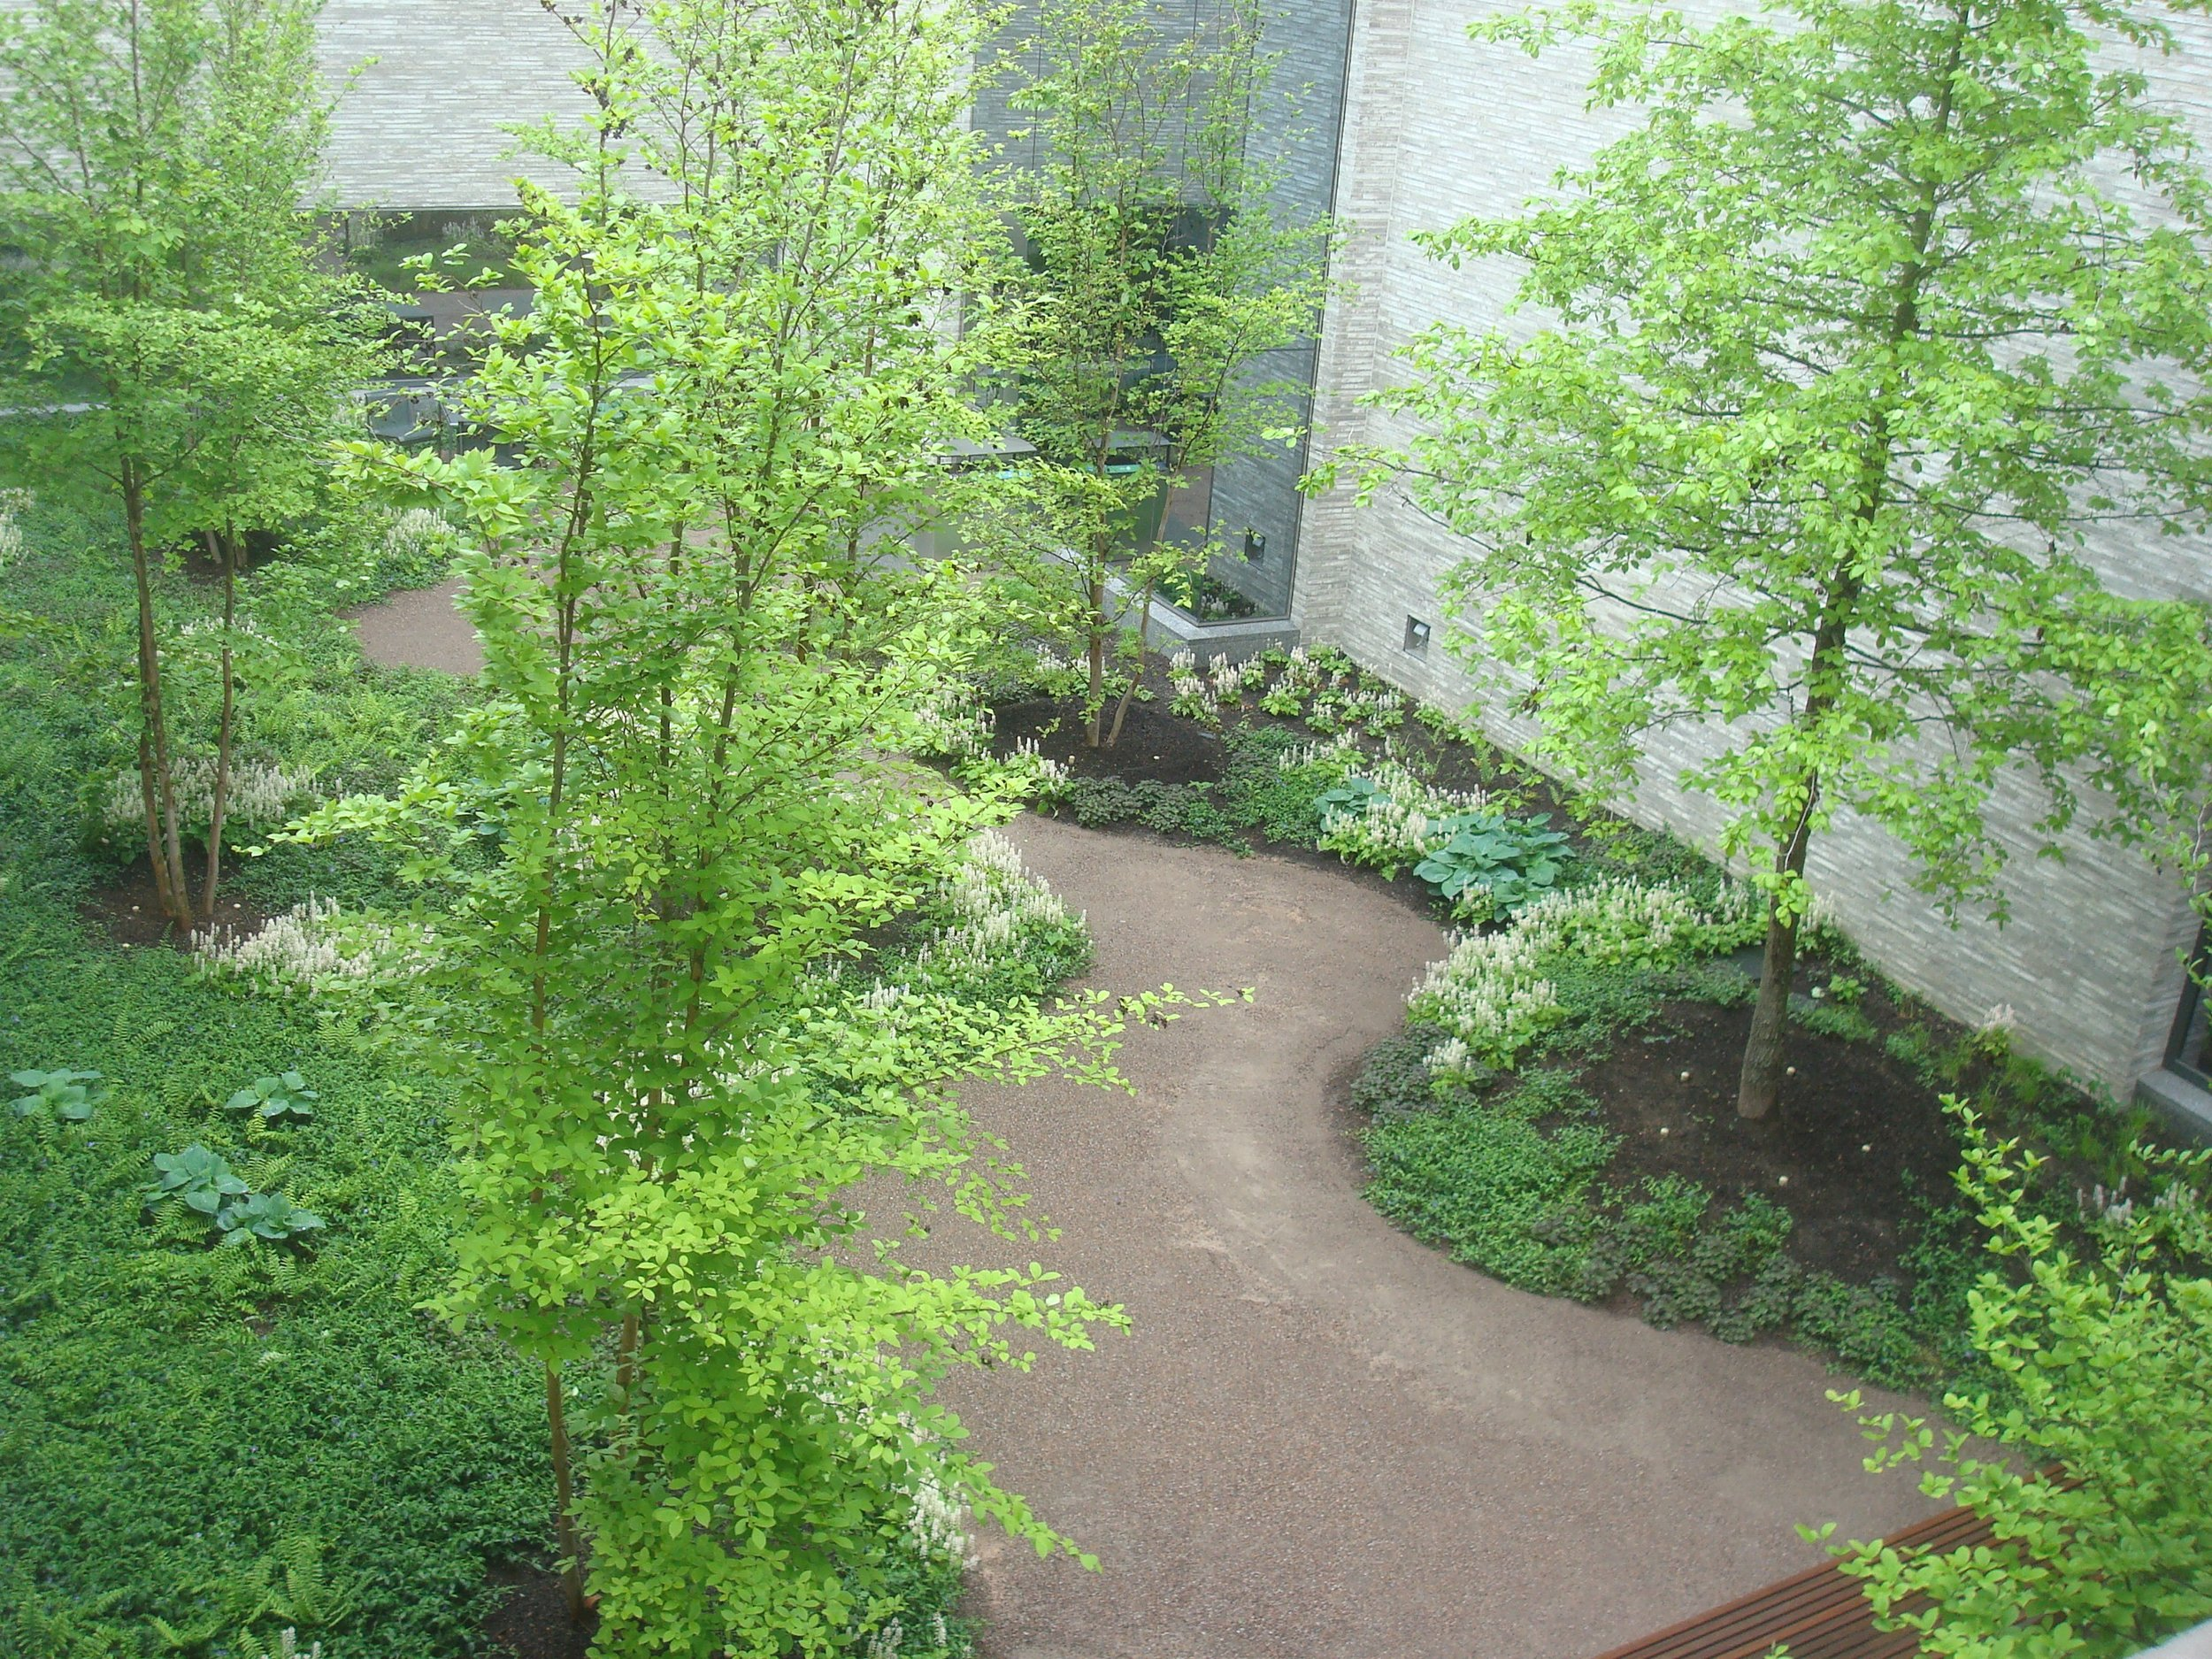 Interior courtyard of the Andlinger Center, with walking path.